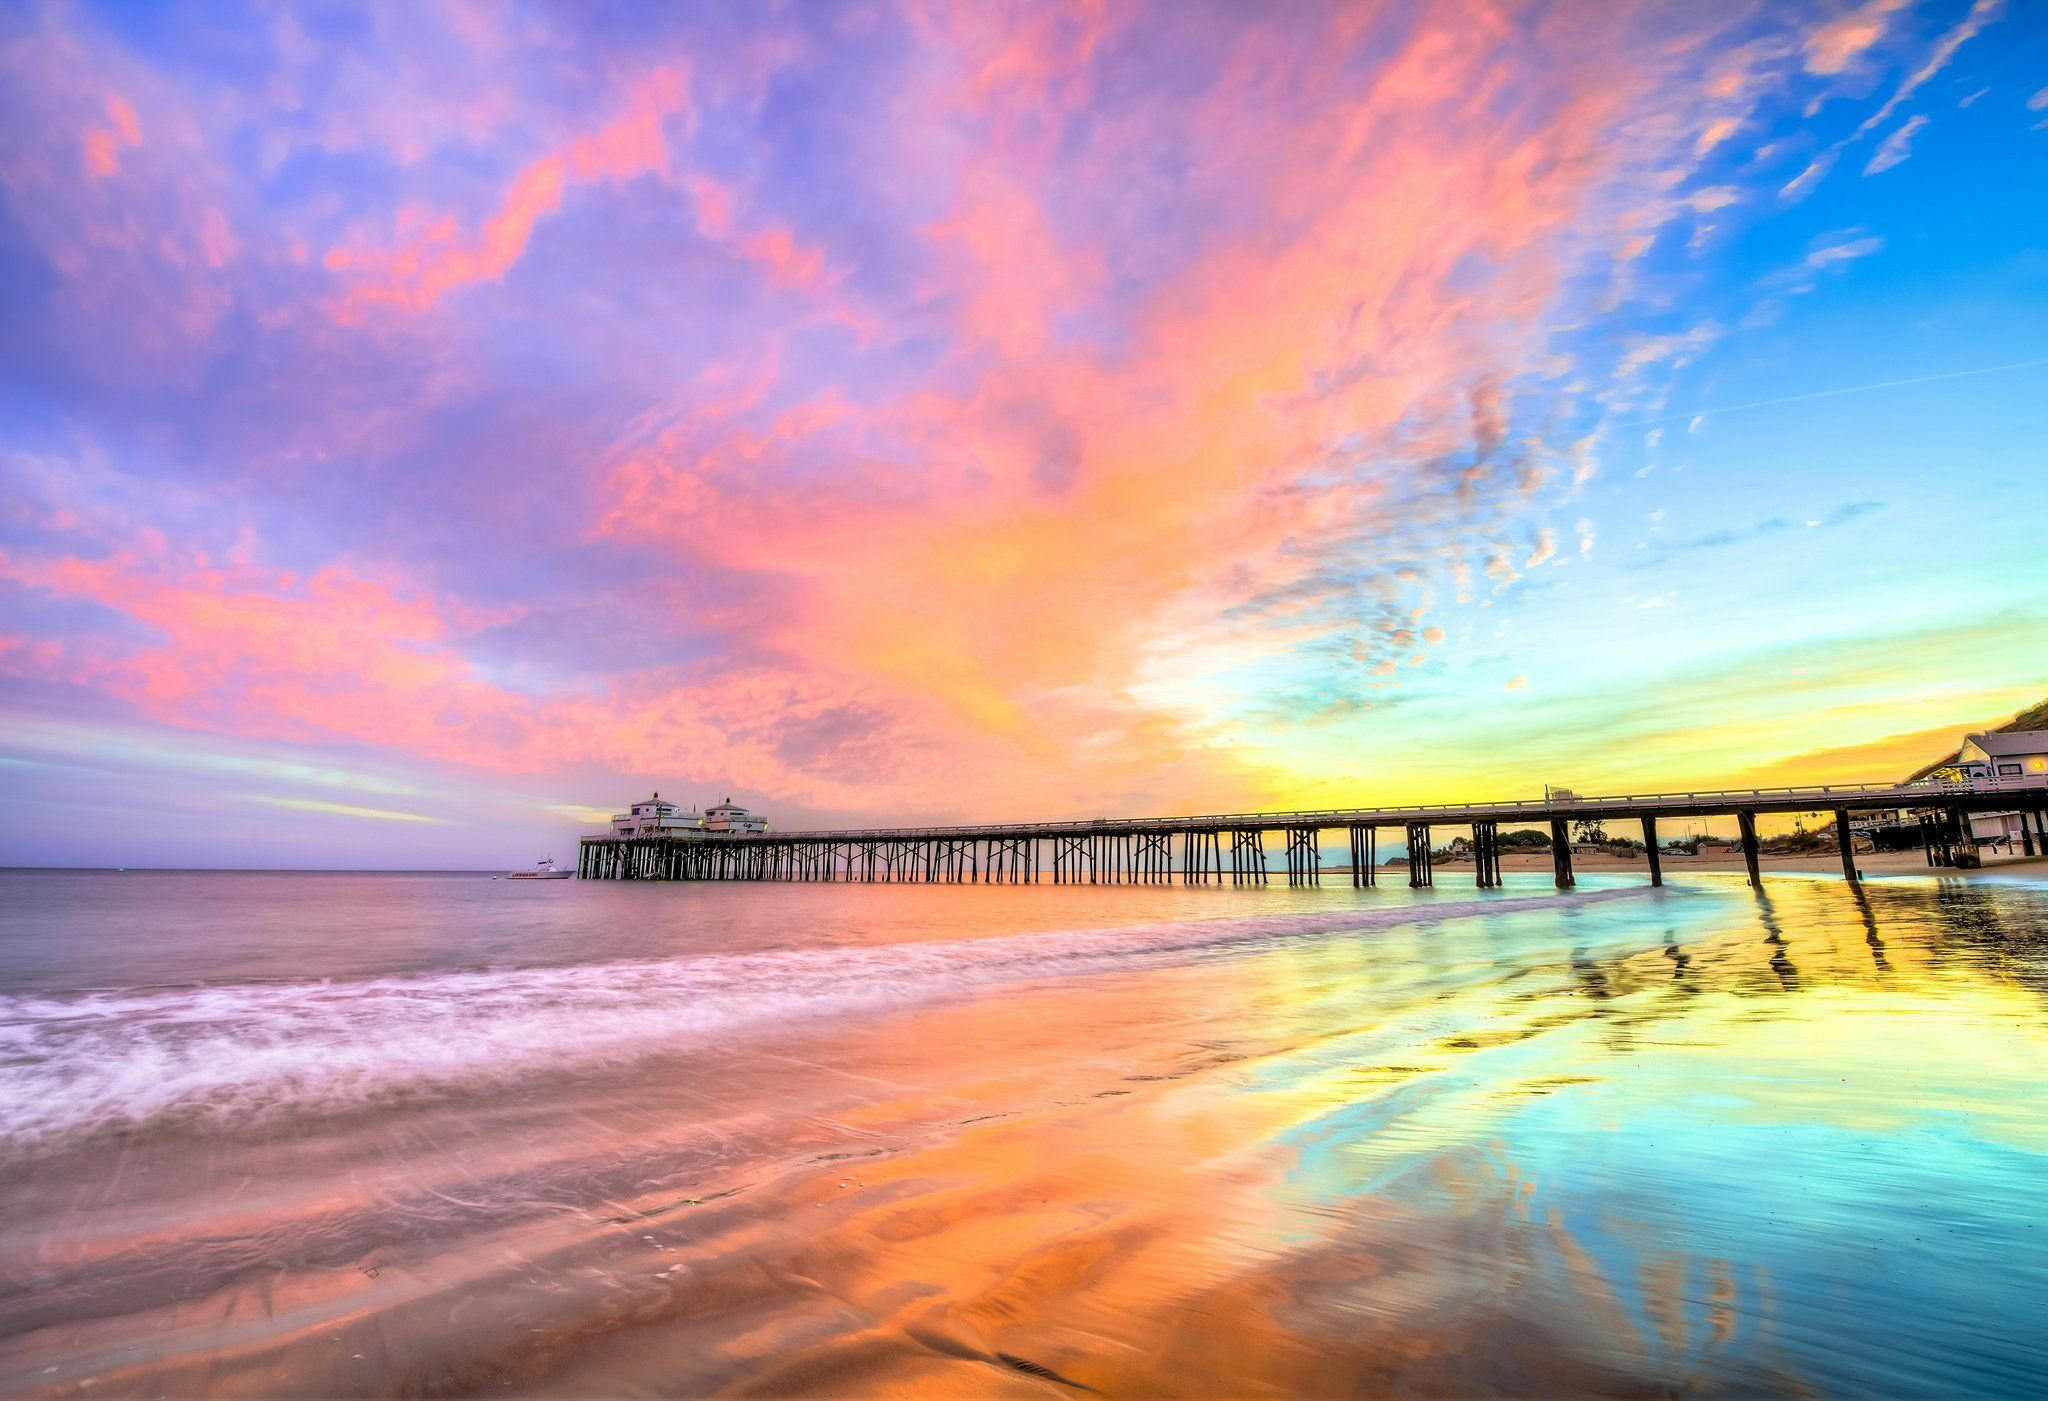 40 Hollywood Beach Sunset Wallpapers   Download at WallpaperBro 2048x1401